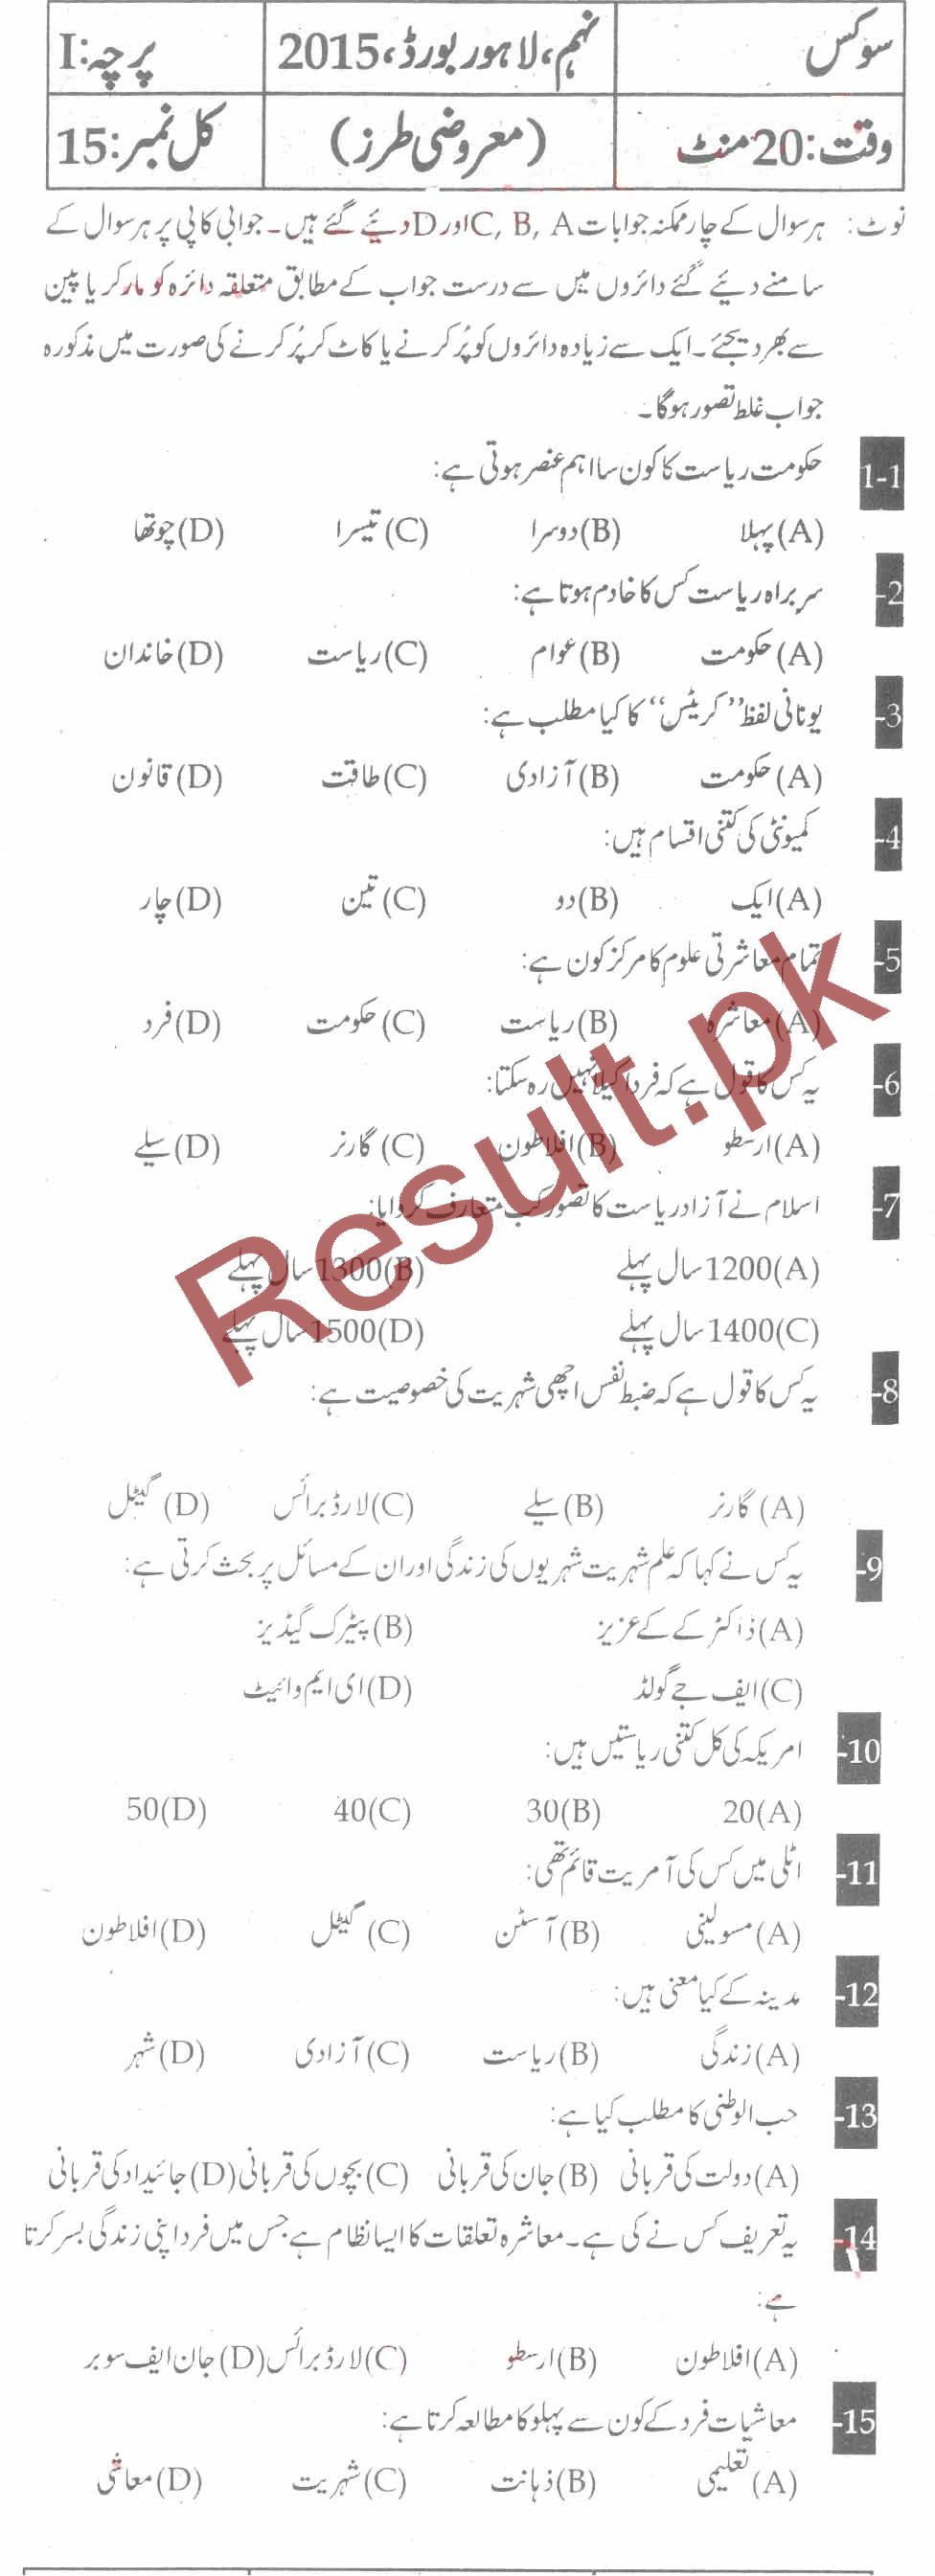 BISE Faisalabad Board Past Papers 2019 Matric, SSC Part 1